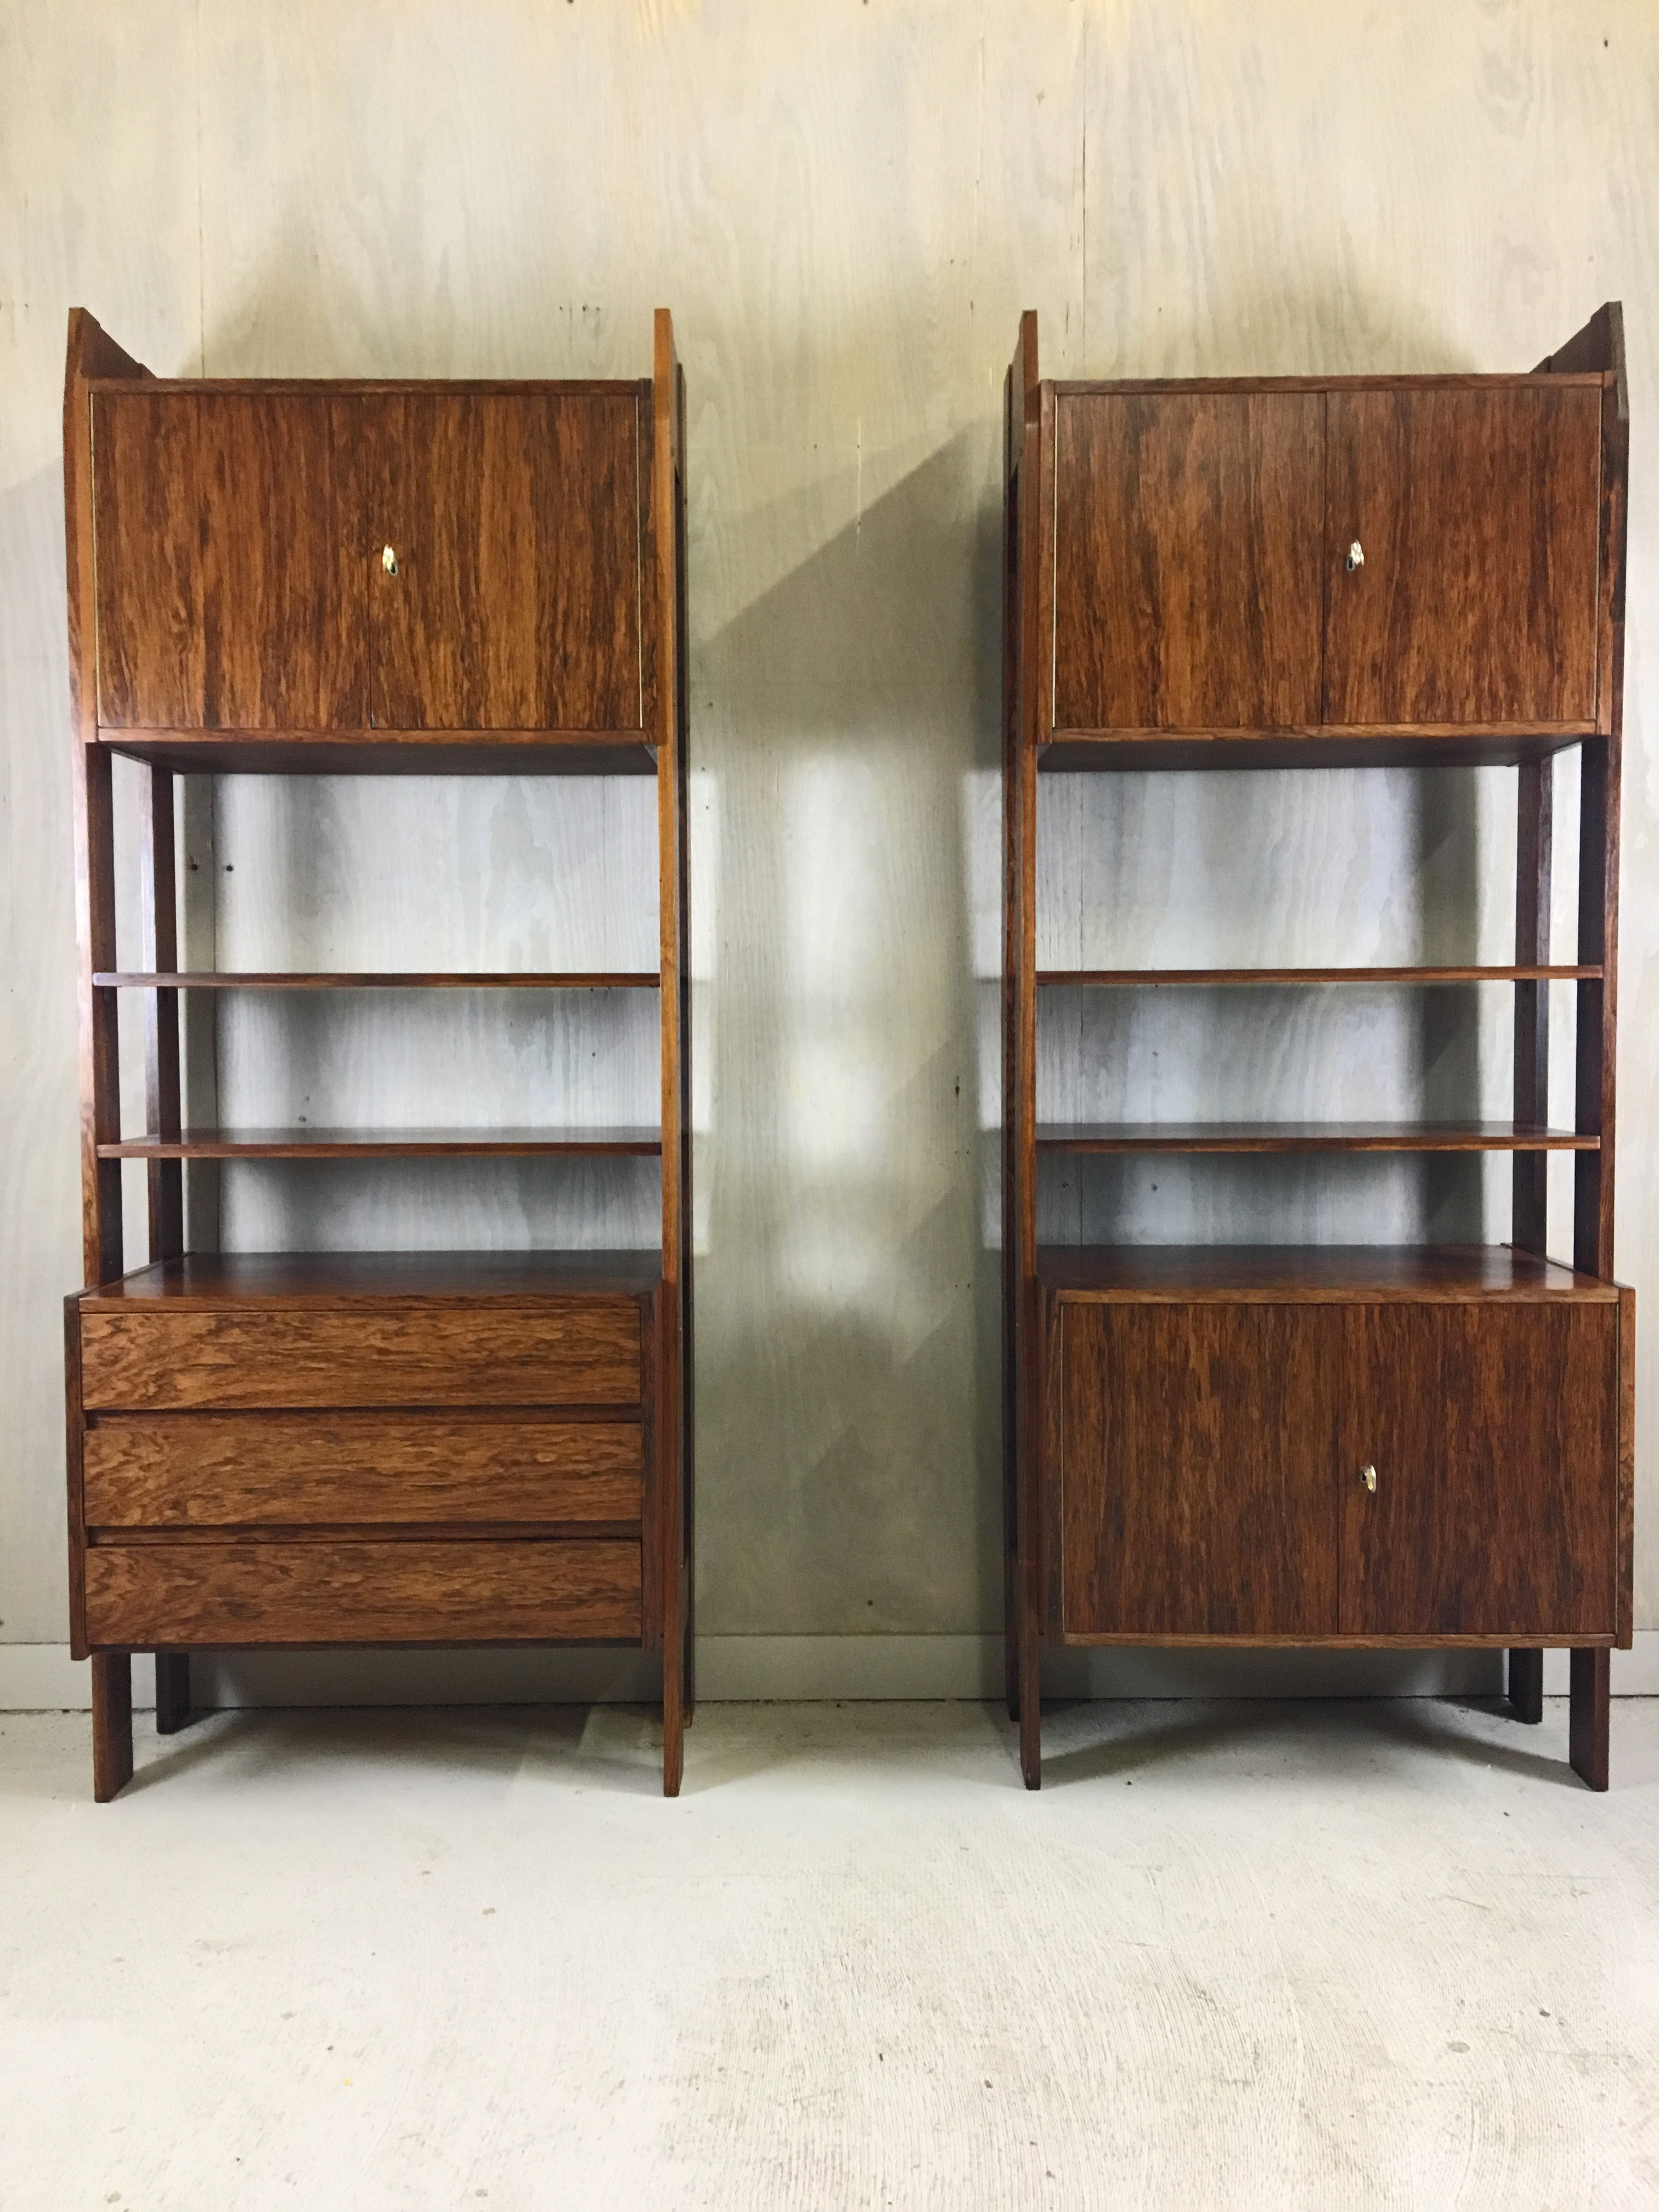 Rosewood Wall Unit with Cabinets and Shelving